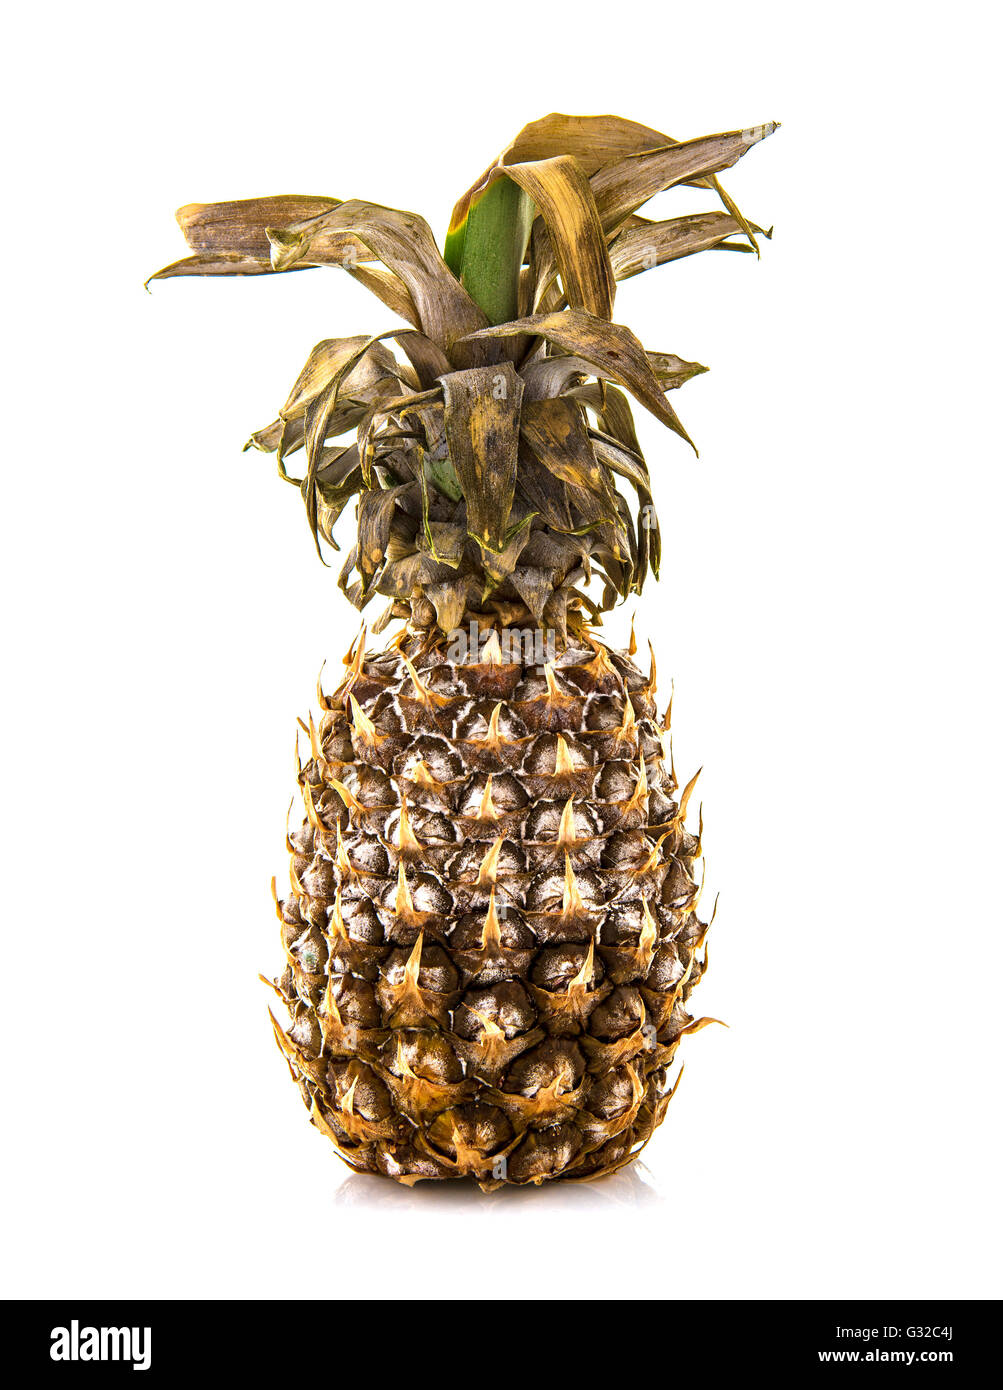 Rotten Pineapple on a white background - Stock Image